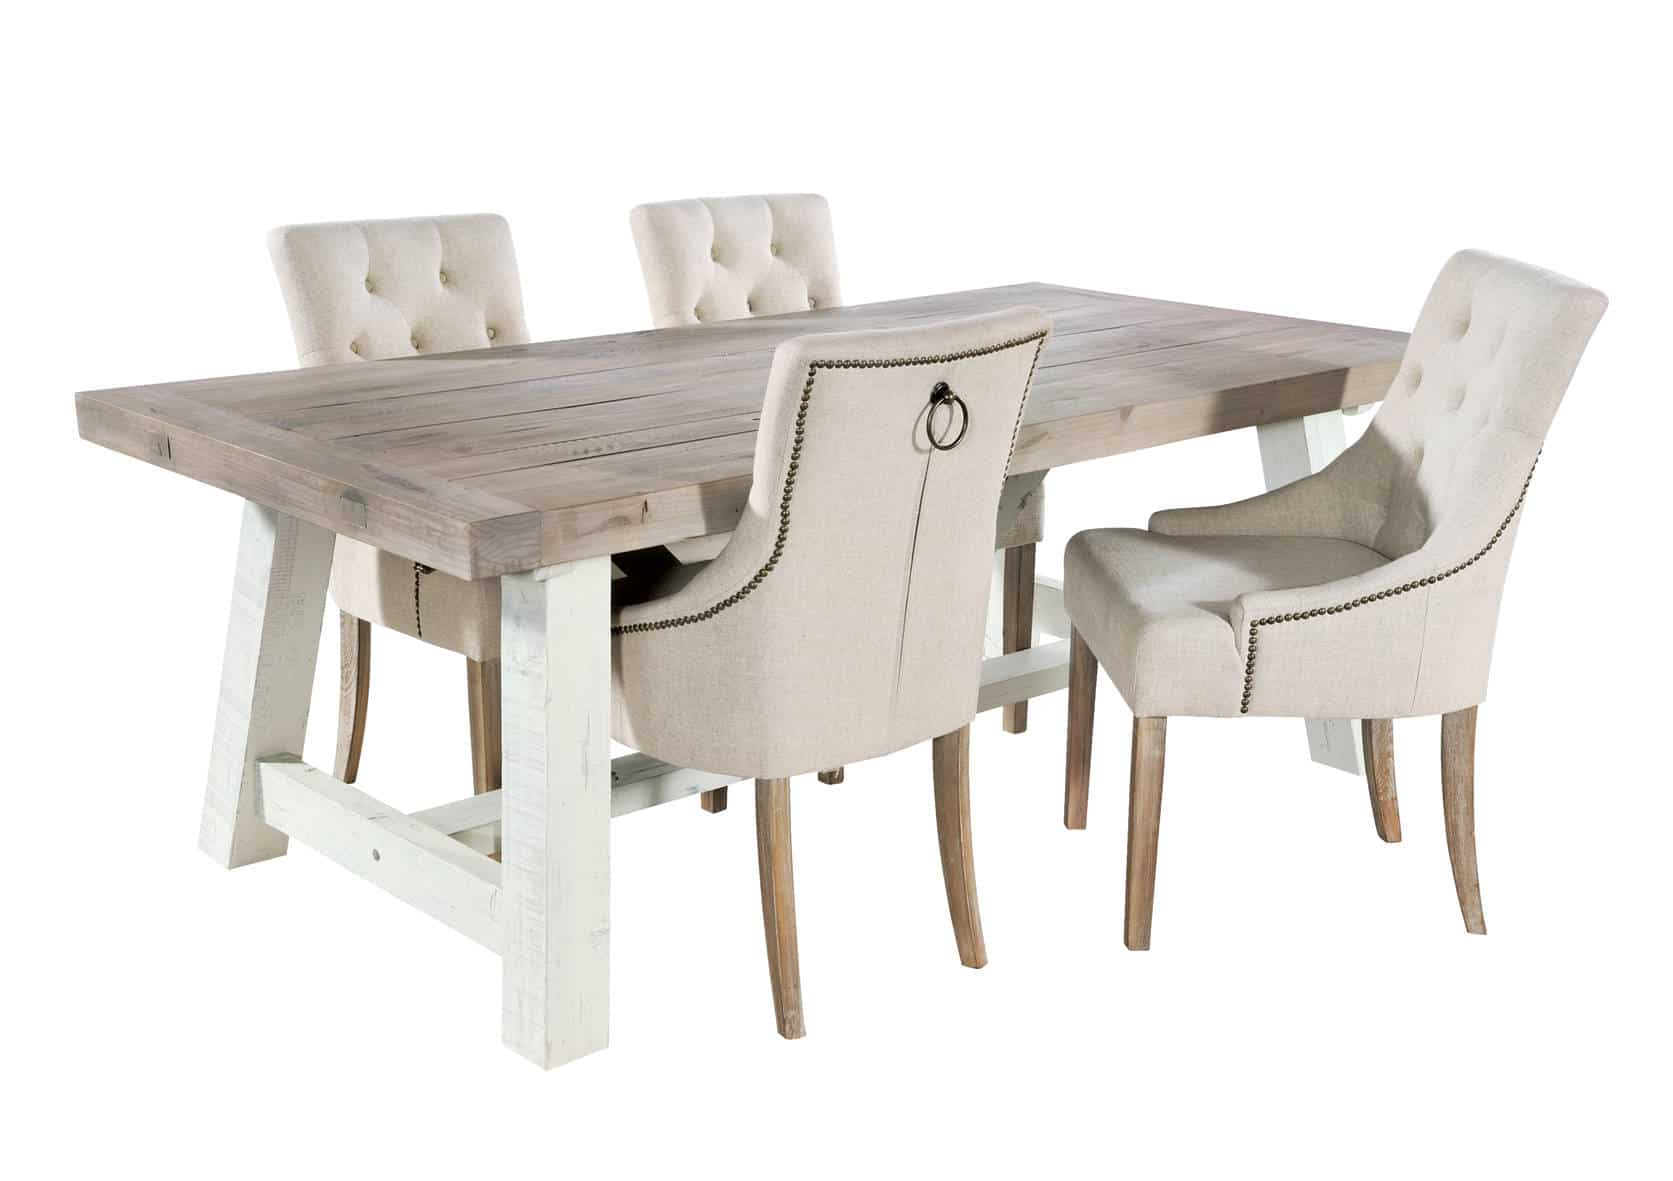 Purbeck Shabby Chic Dining Table With Stella Chairs